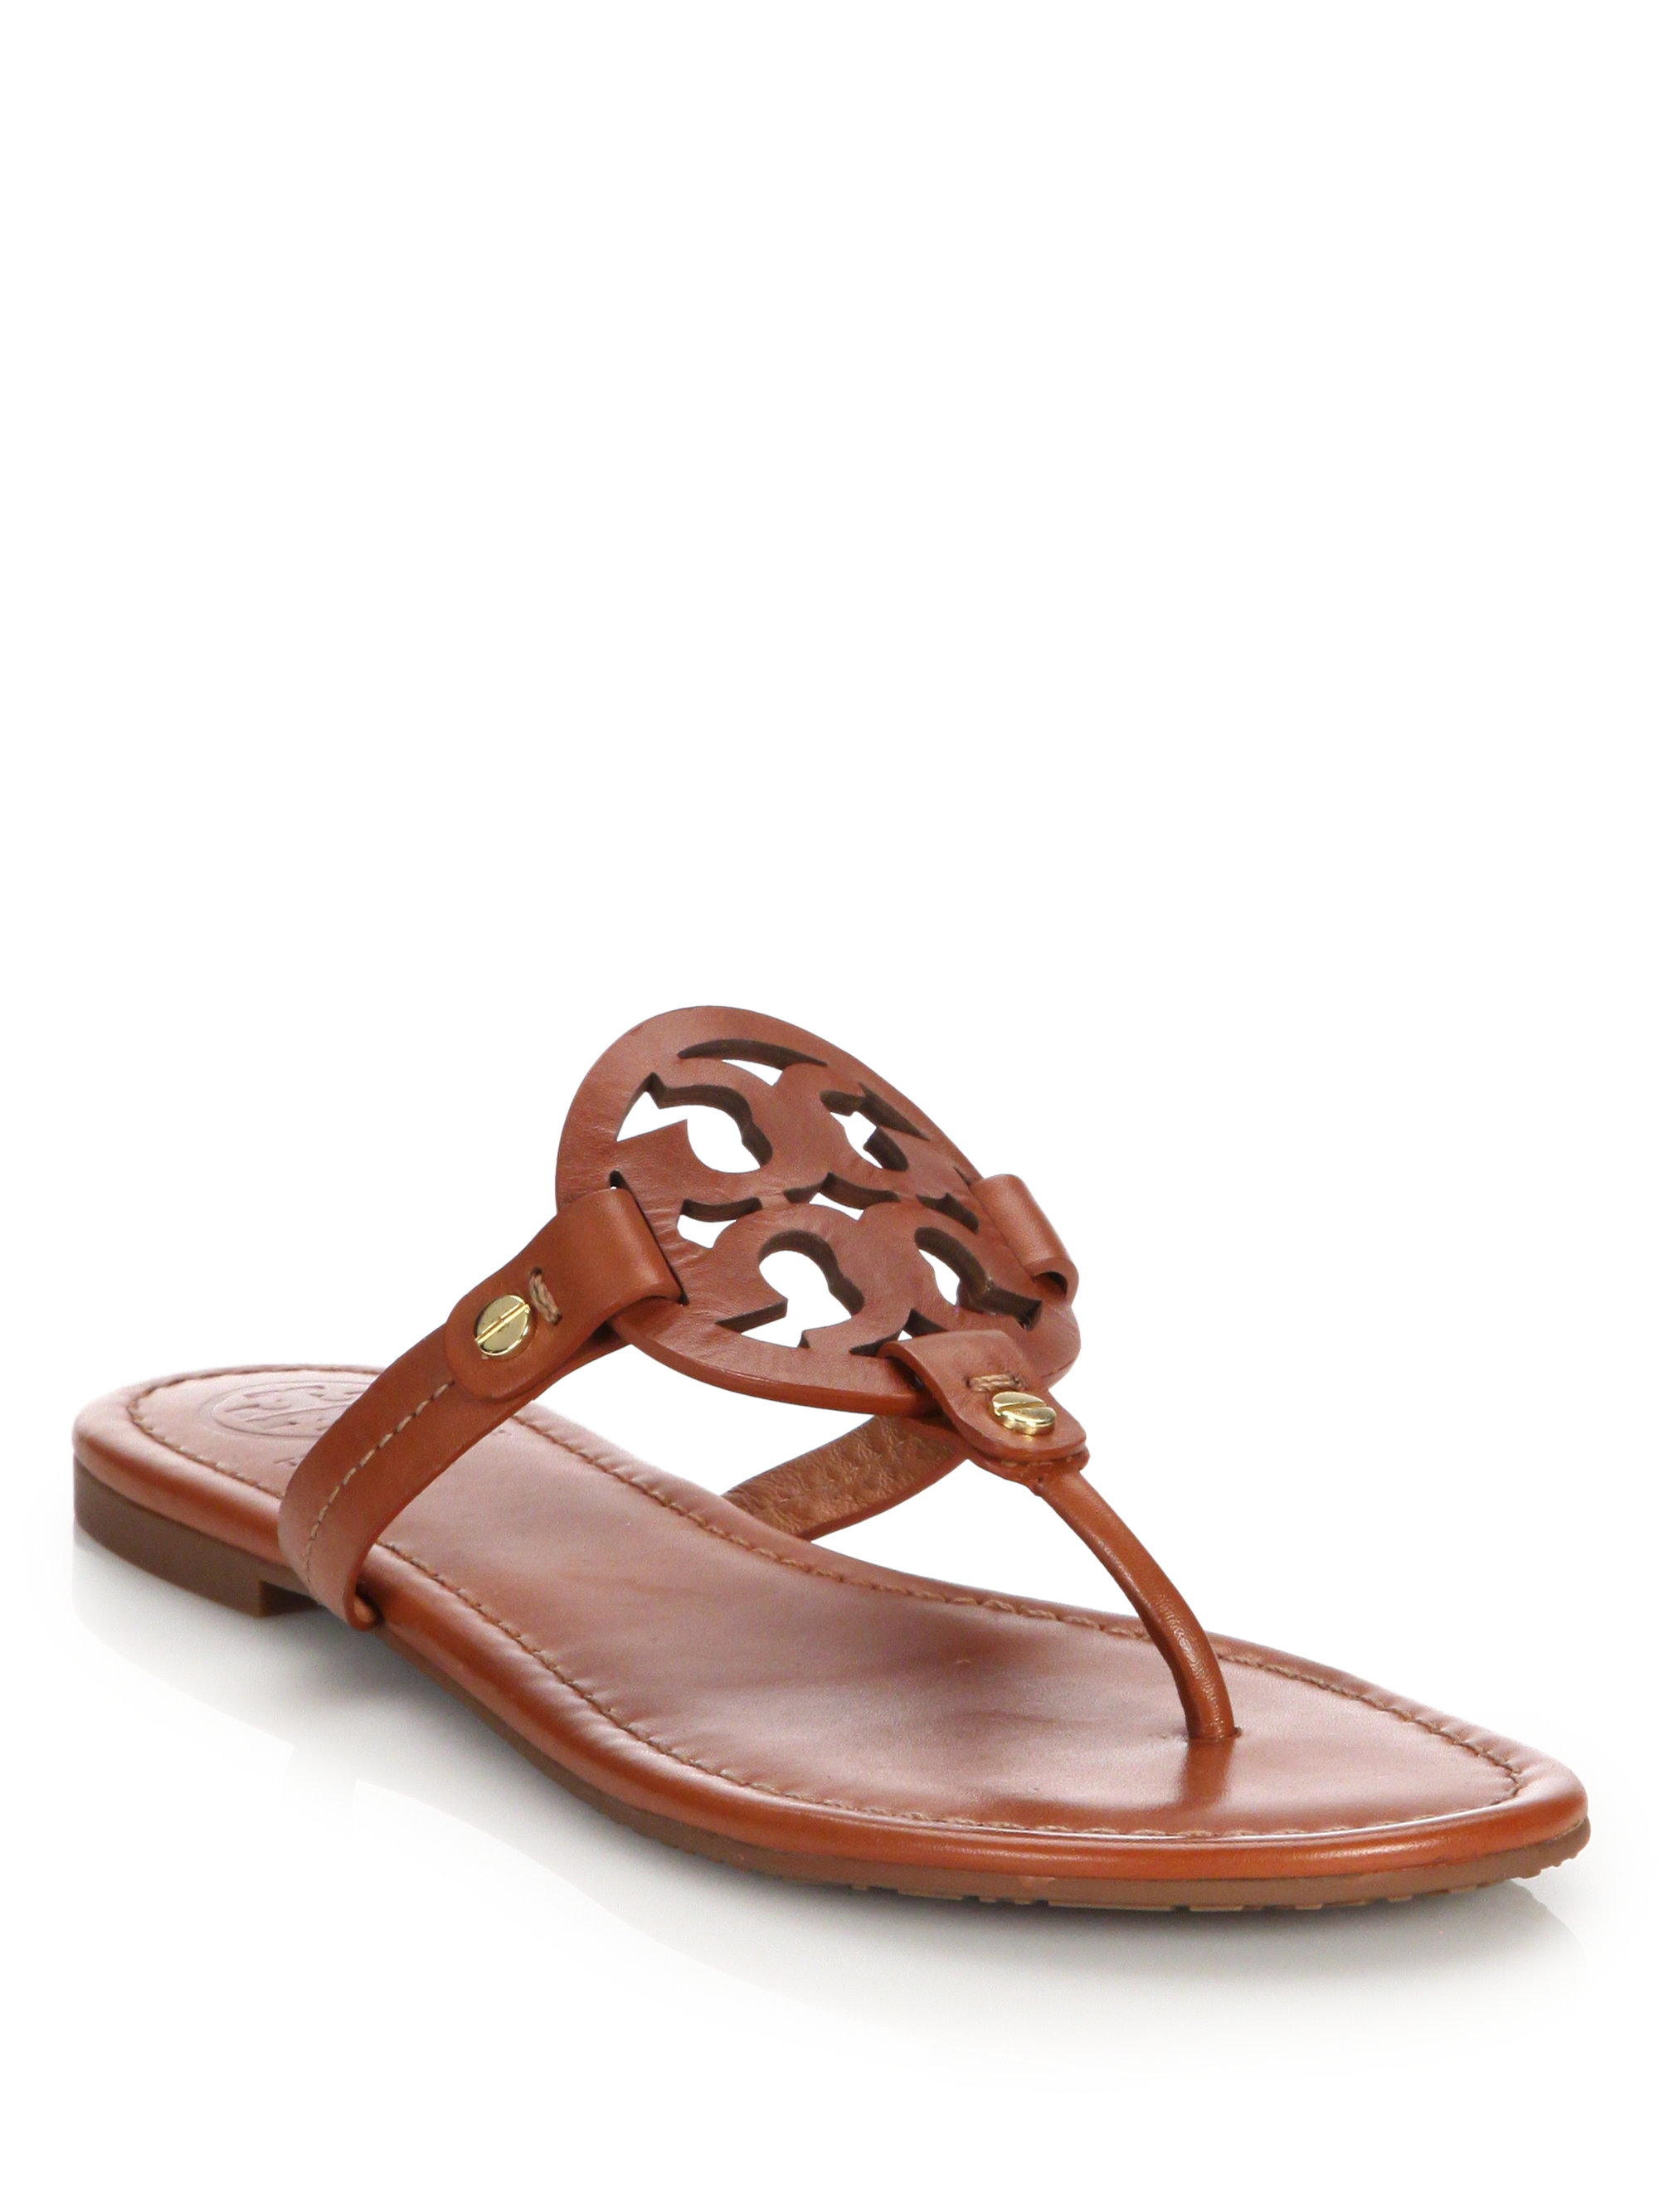 tory burch miller leather logo thong sandals in brown lyst. Black Bedroom Furniture Sets. Home Design Ideas